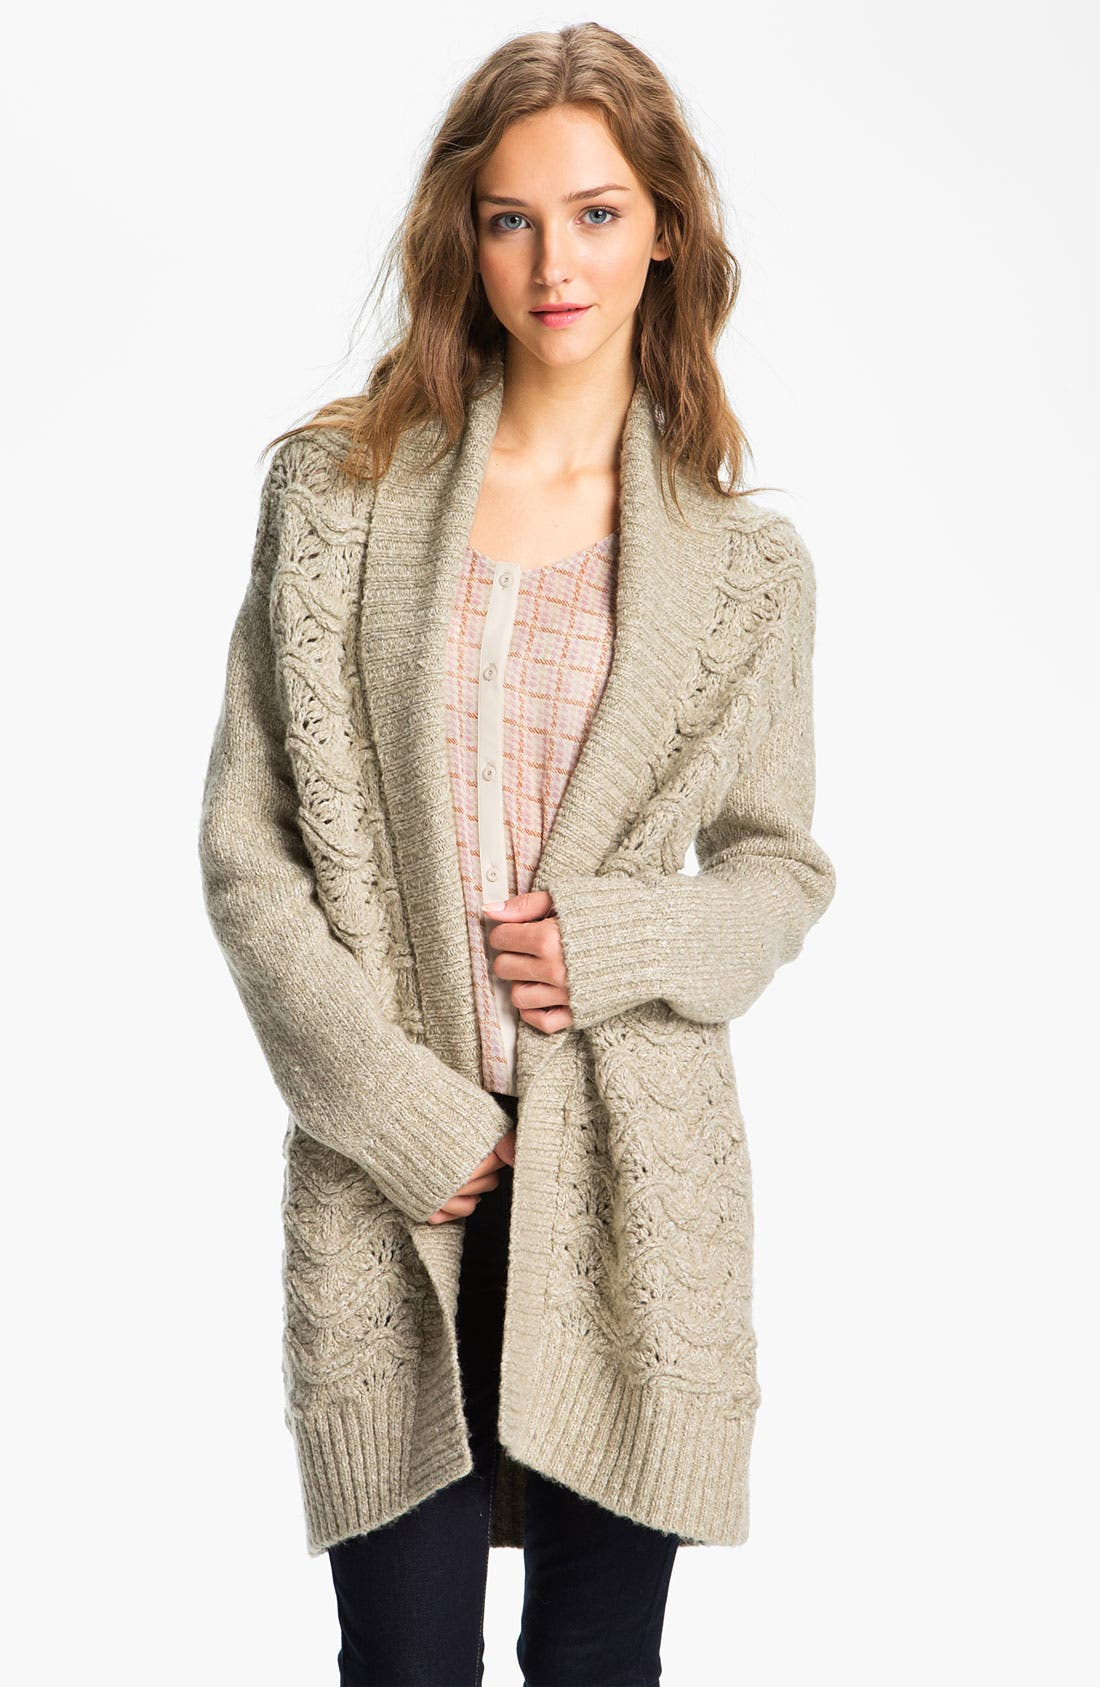 Scallop Knit Oversized Cardigan,                             Main thumbnail 1, color,                             Stone Cobbler